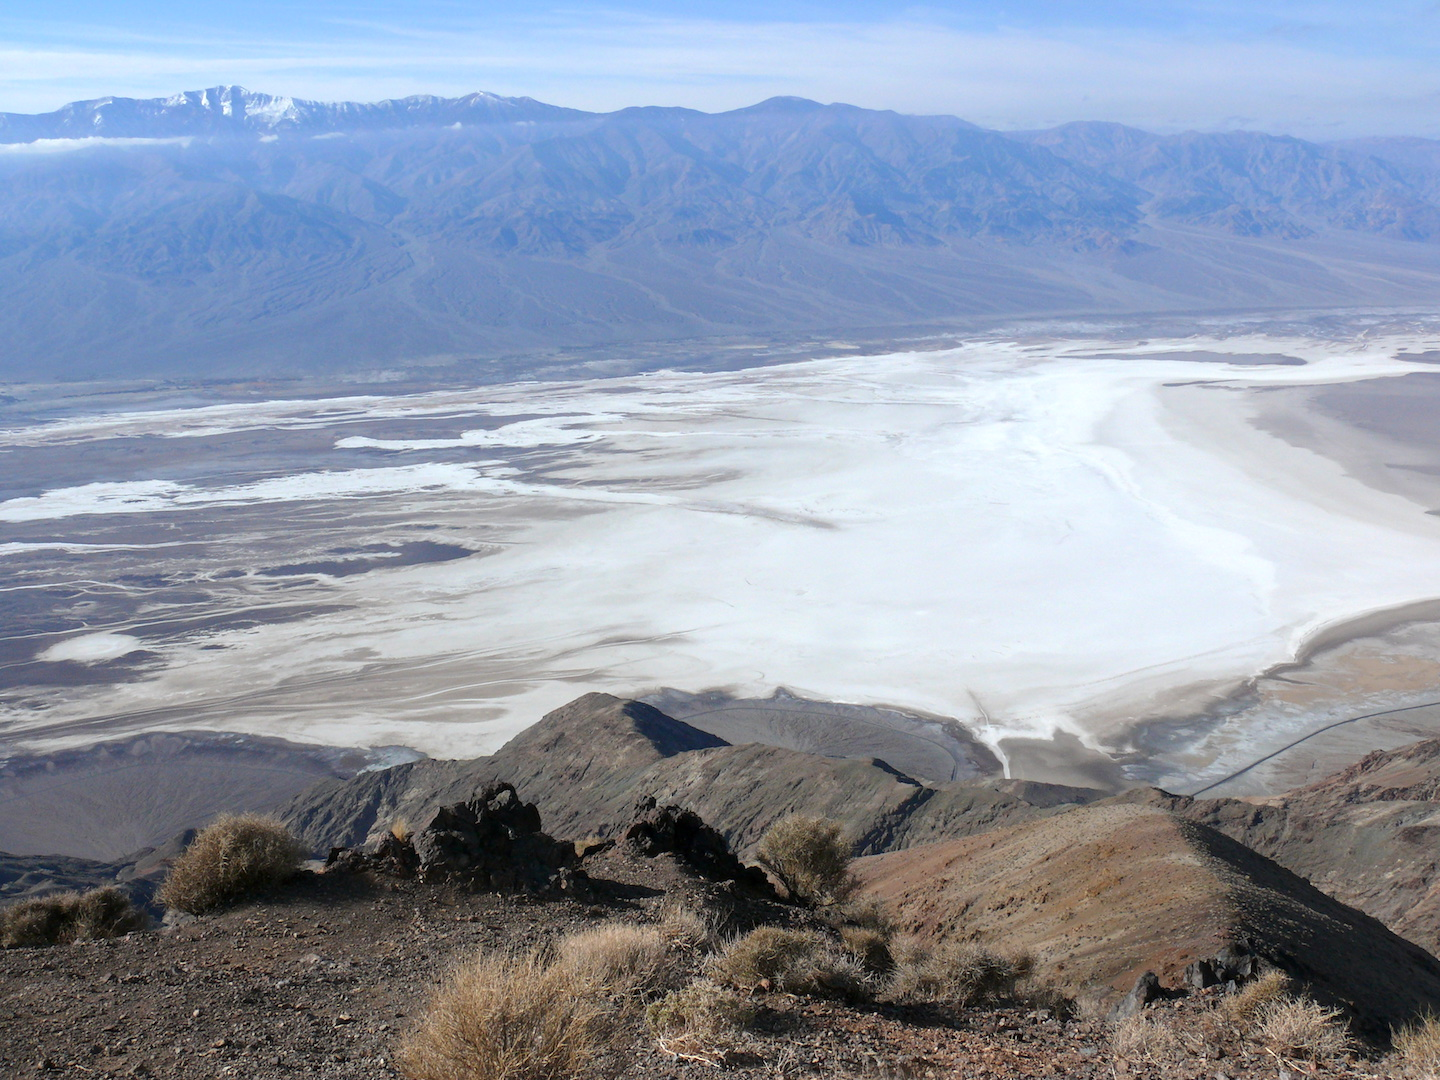 View of salt flats and mountains